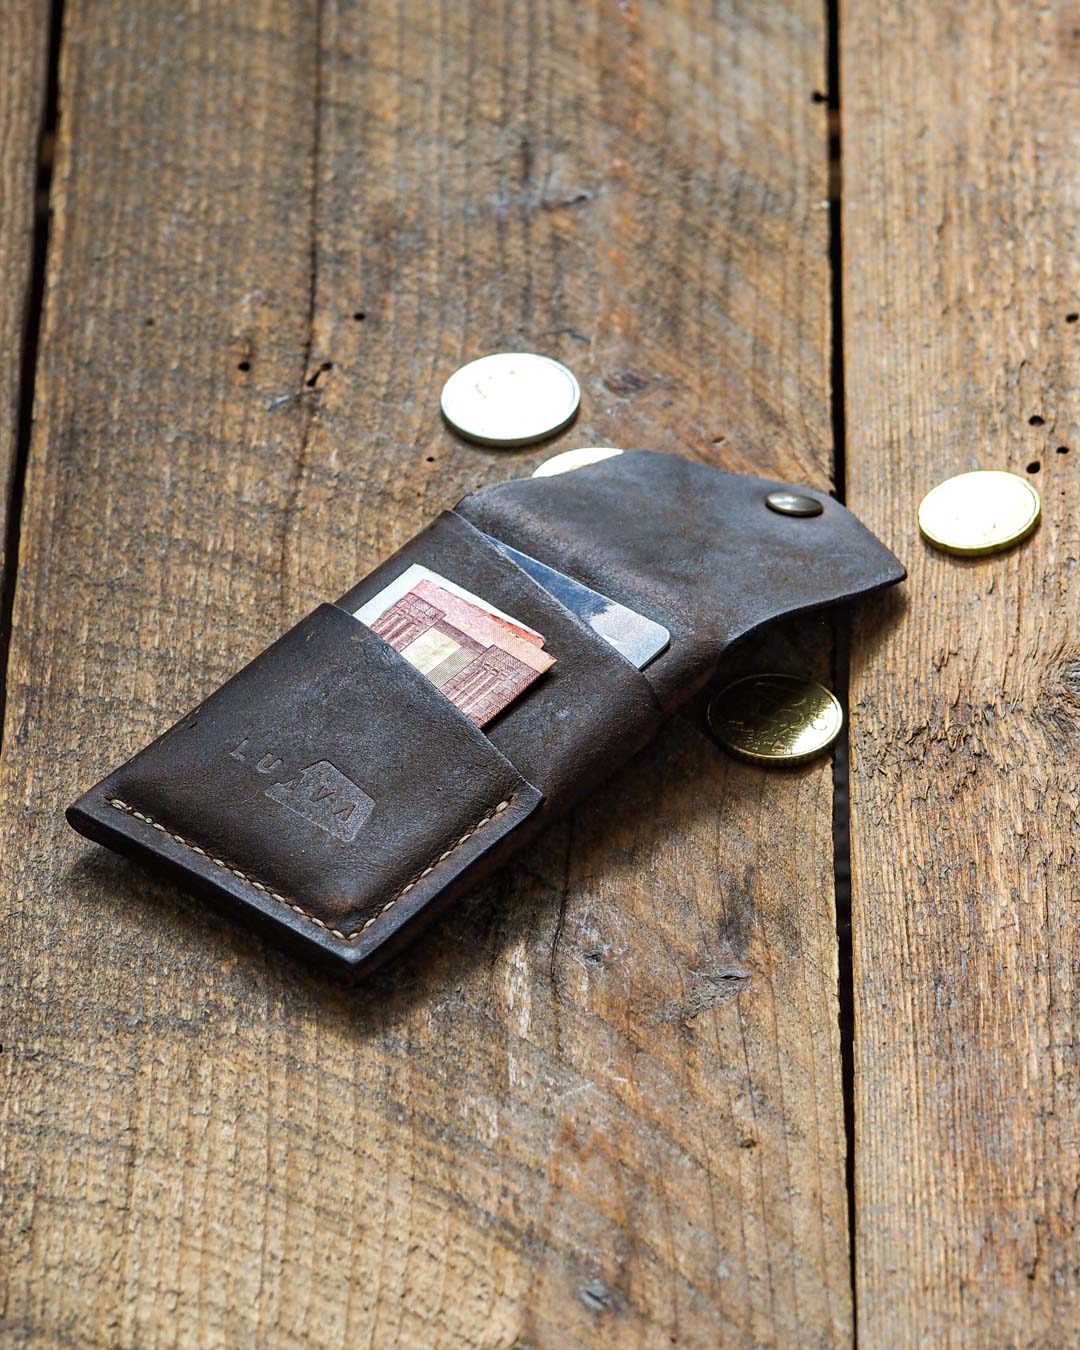 Luava handcrafted leather overfold wallet rustic cardholder card holder handmade in finland angle back open